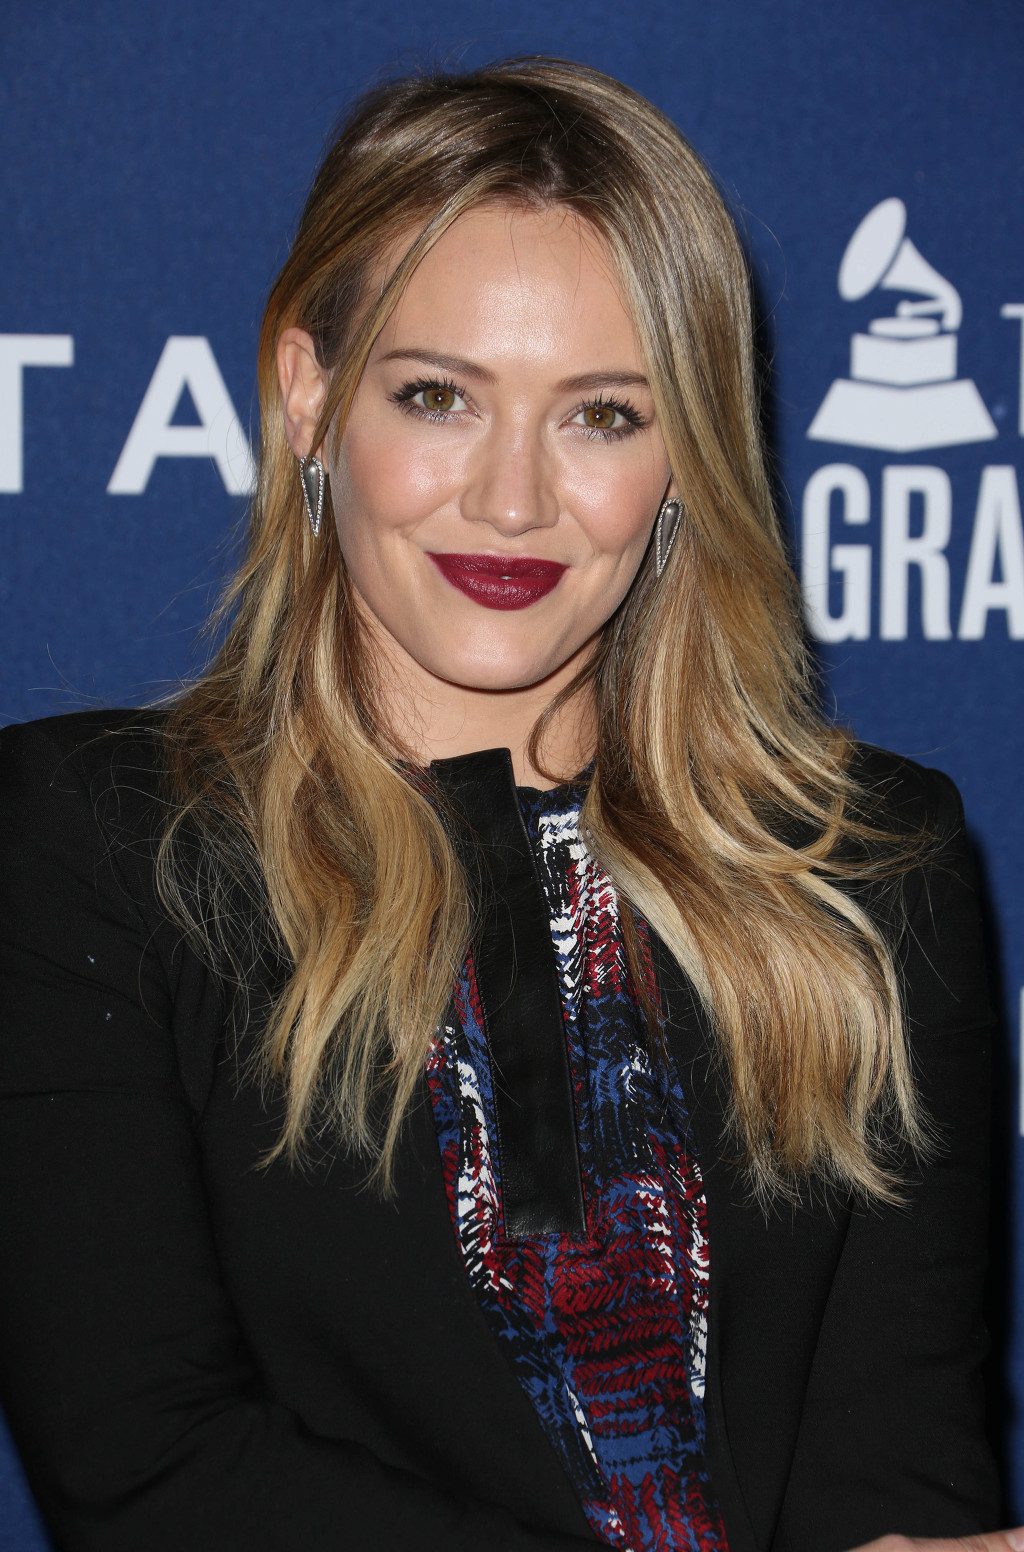 Hilary Duff Write Personal Letter To People On Twitter